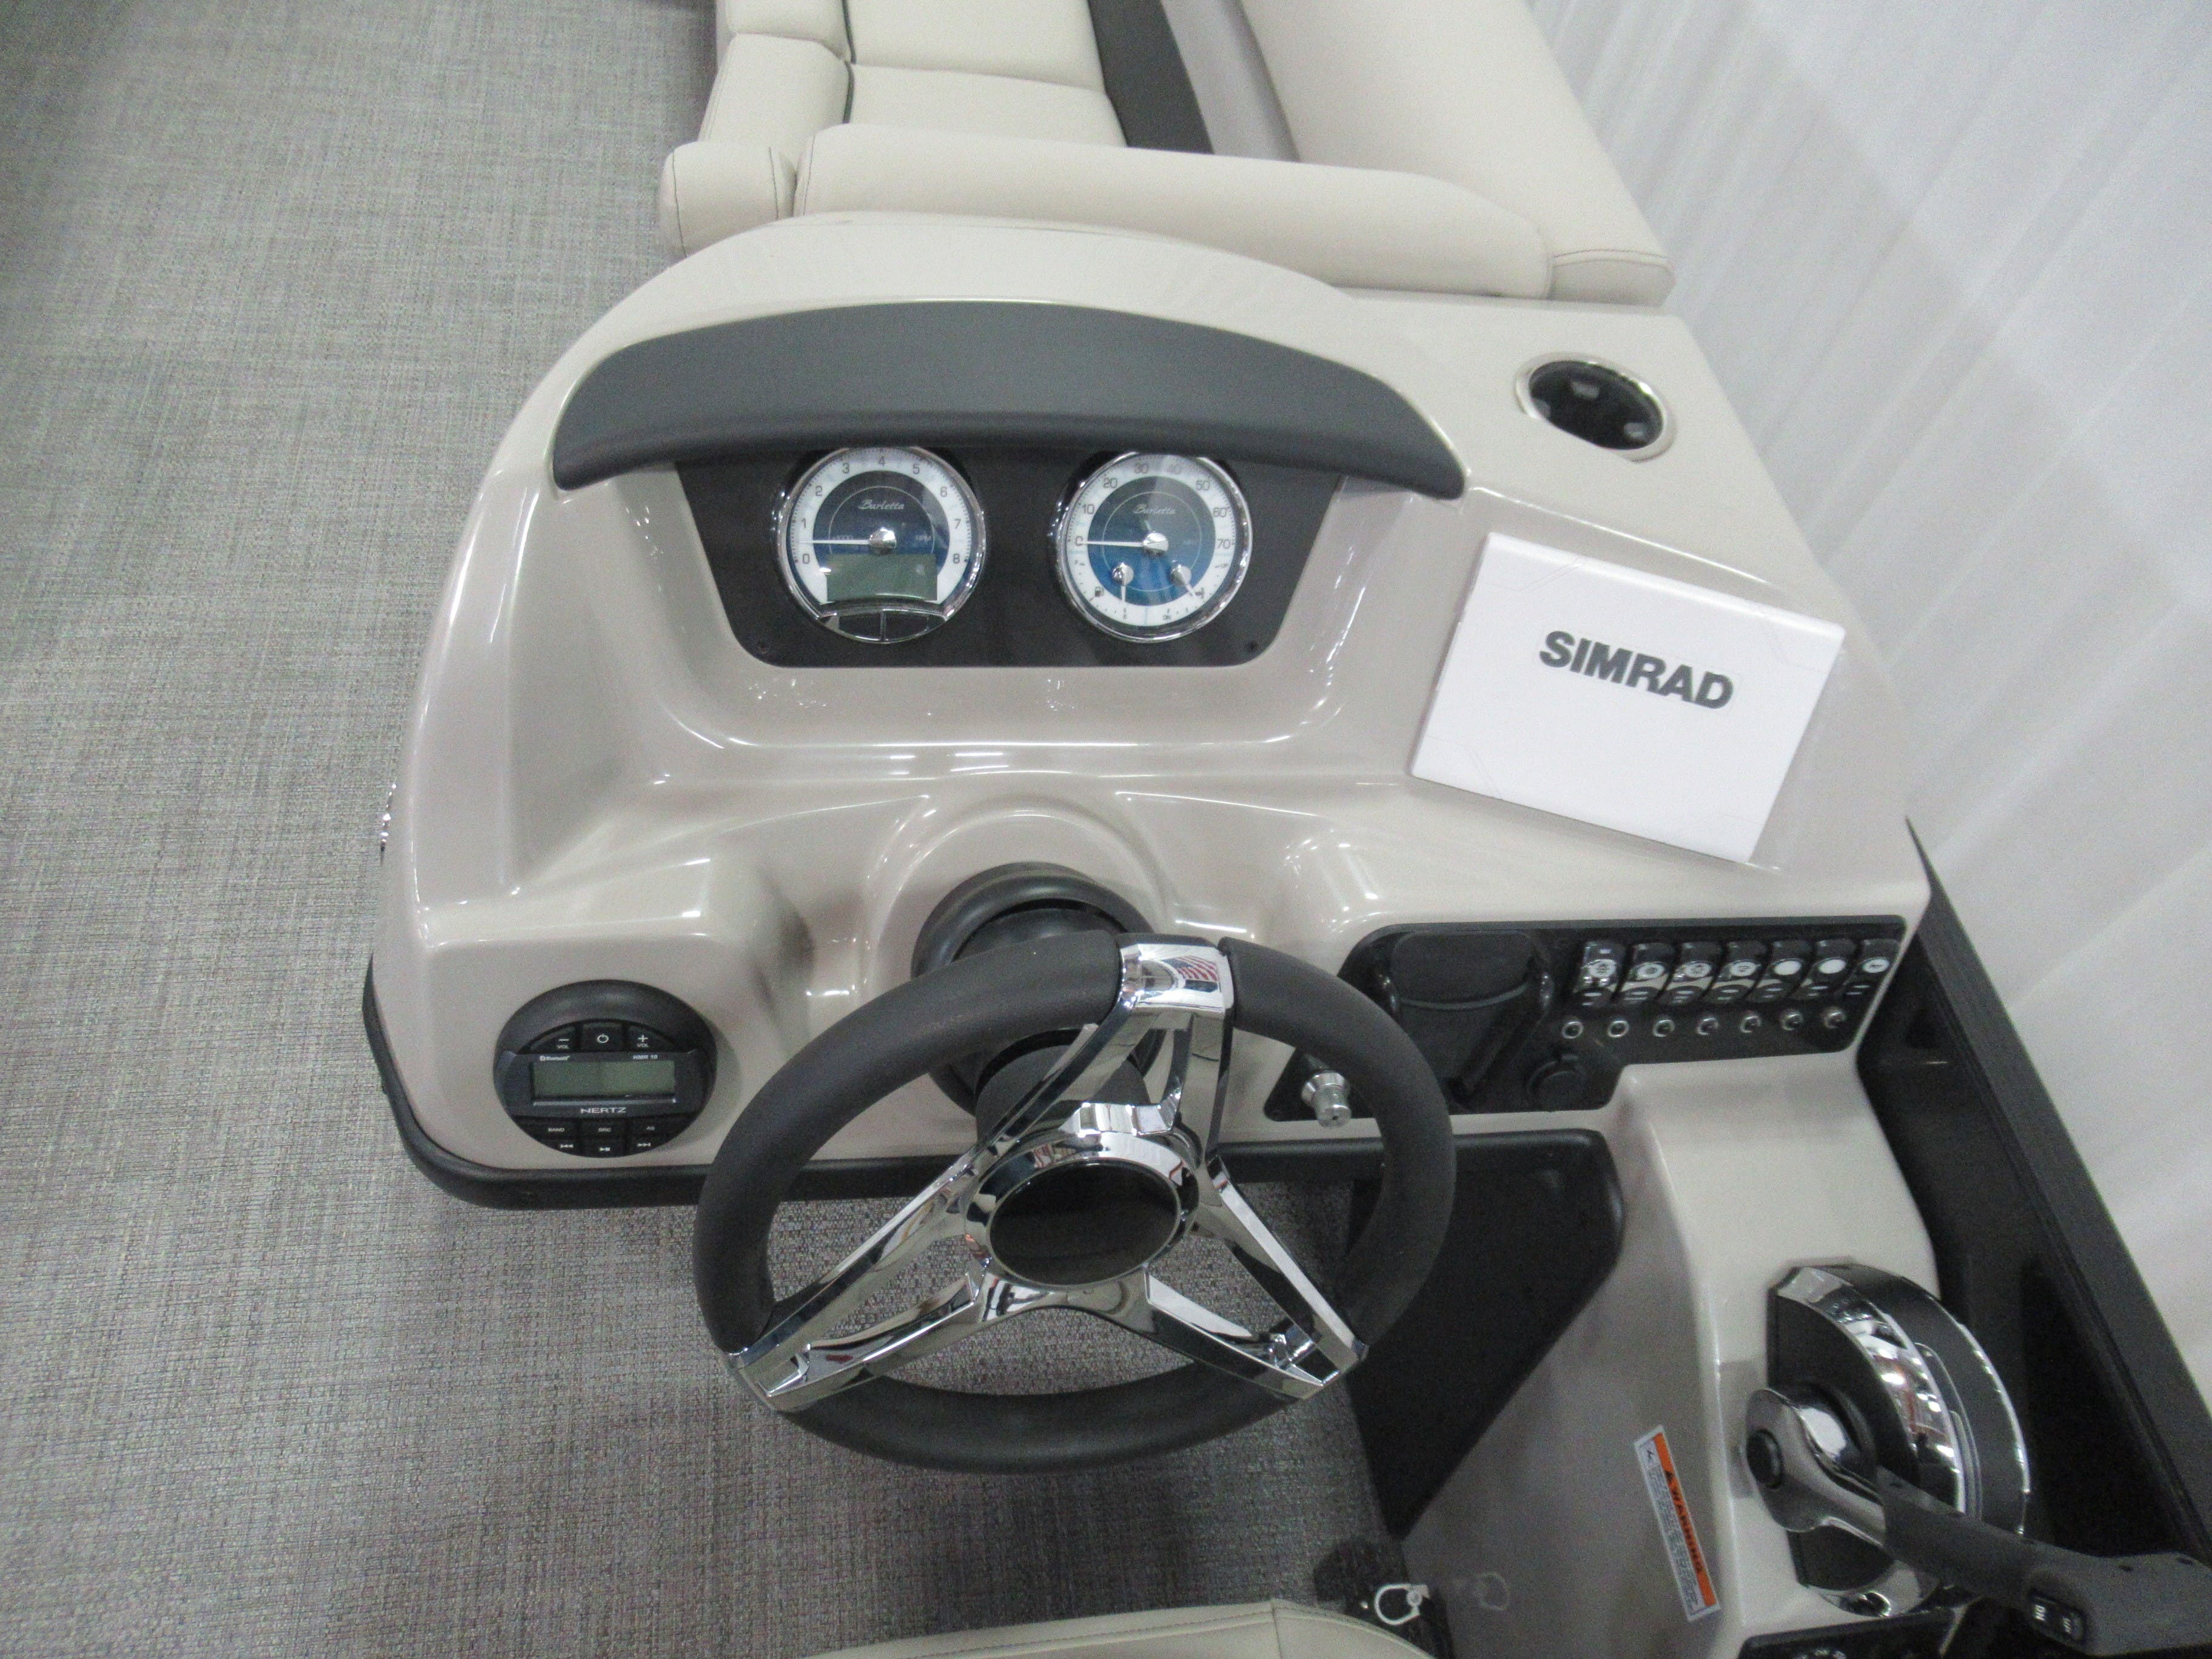 2021 Barletta boat for sale, model of the boat is C24uc & Image # 9 of 11